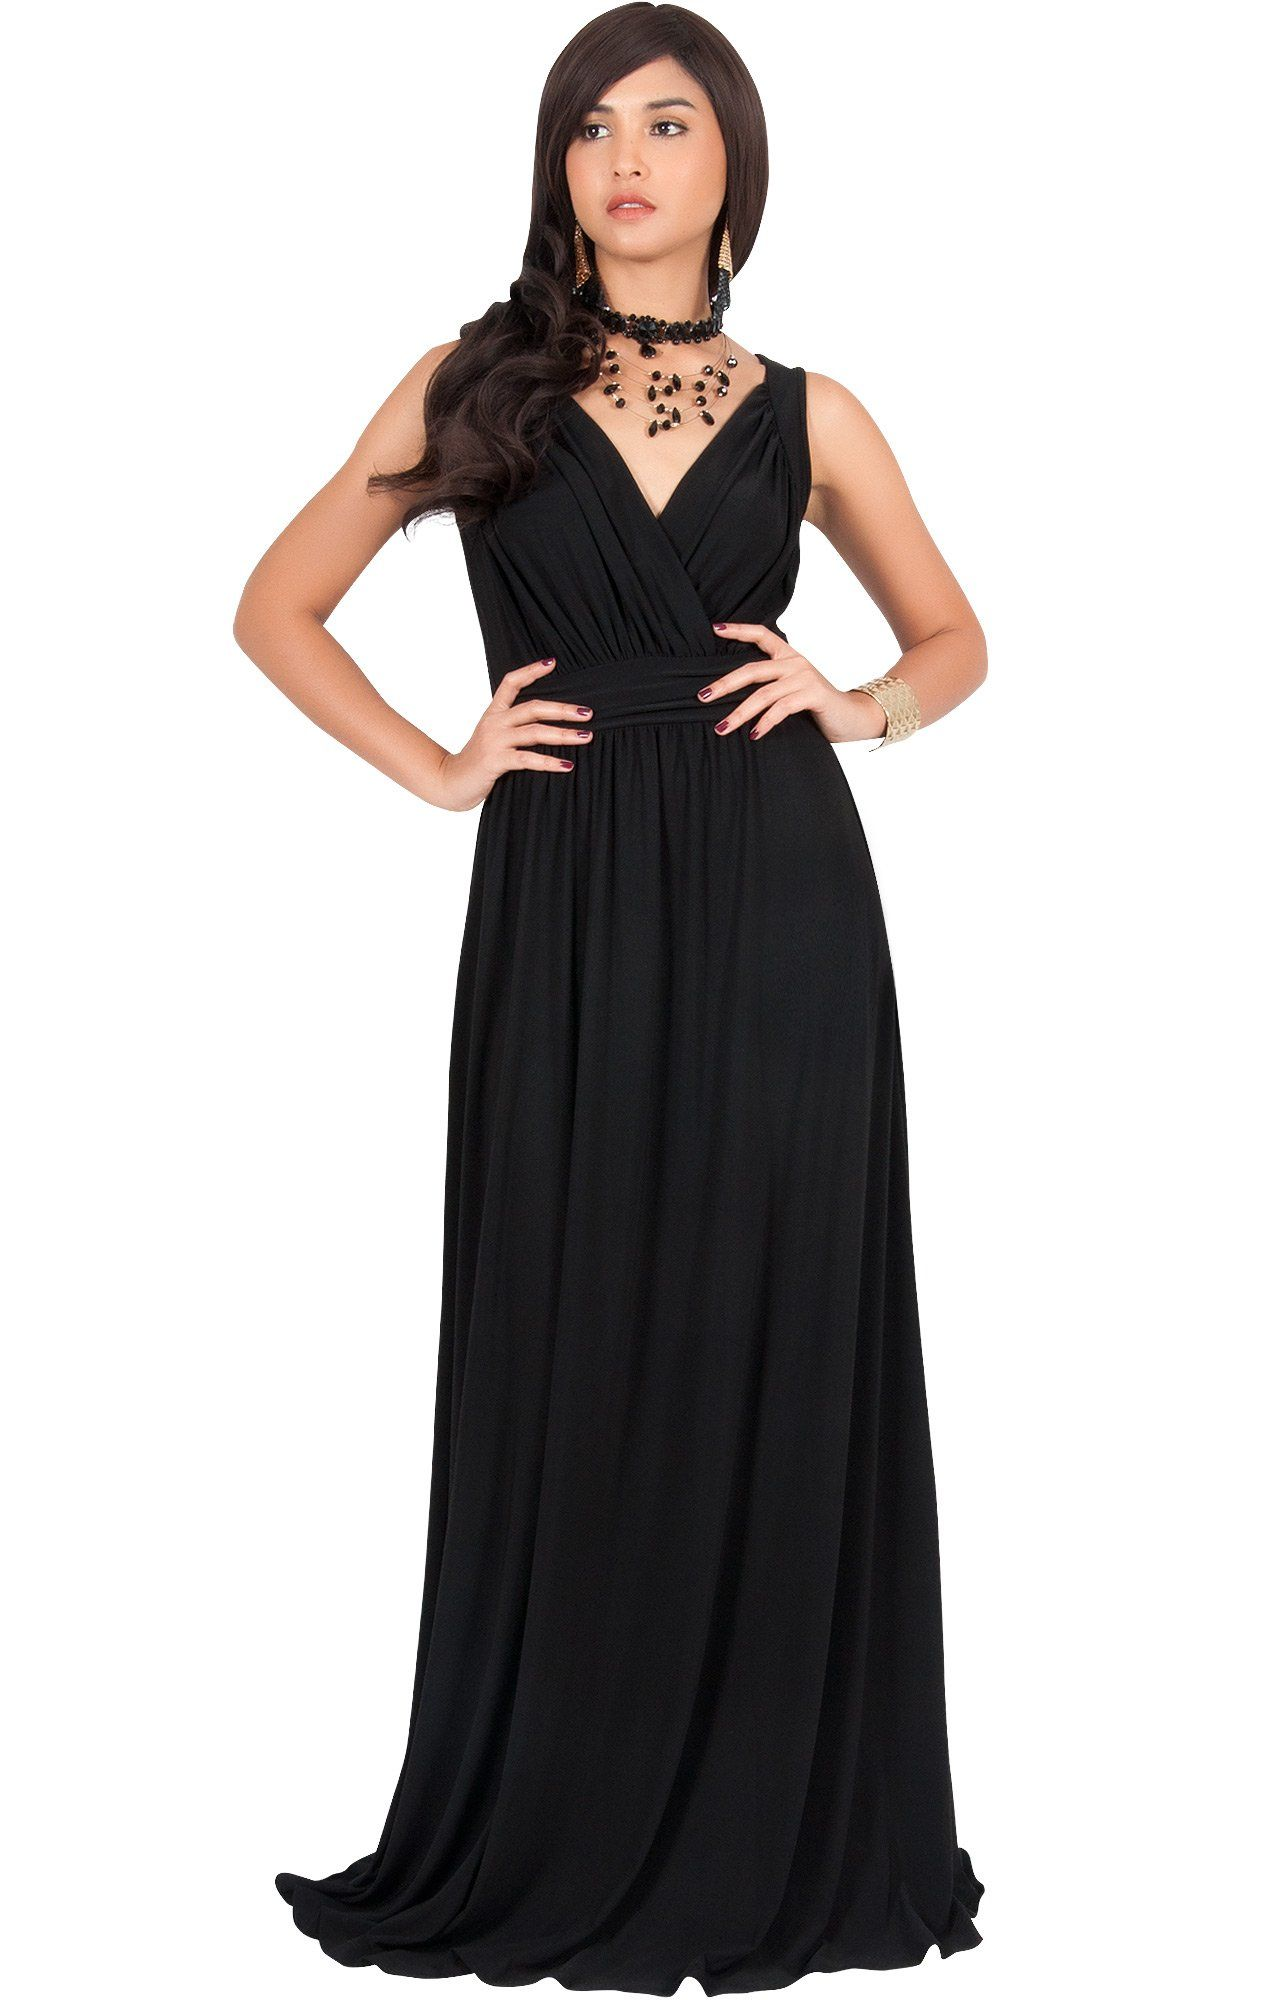 86a7d130a18 Maternity Outfits - best maternity dresses   KOH KOH Plus Size Women Long  Sleeveless Flowy Bridesmaids Cocktail Party Evening Formal Sexy Summer  Wedding ...